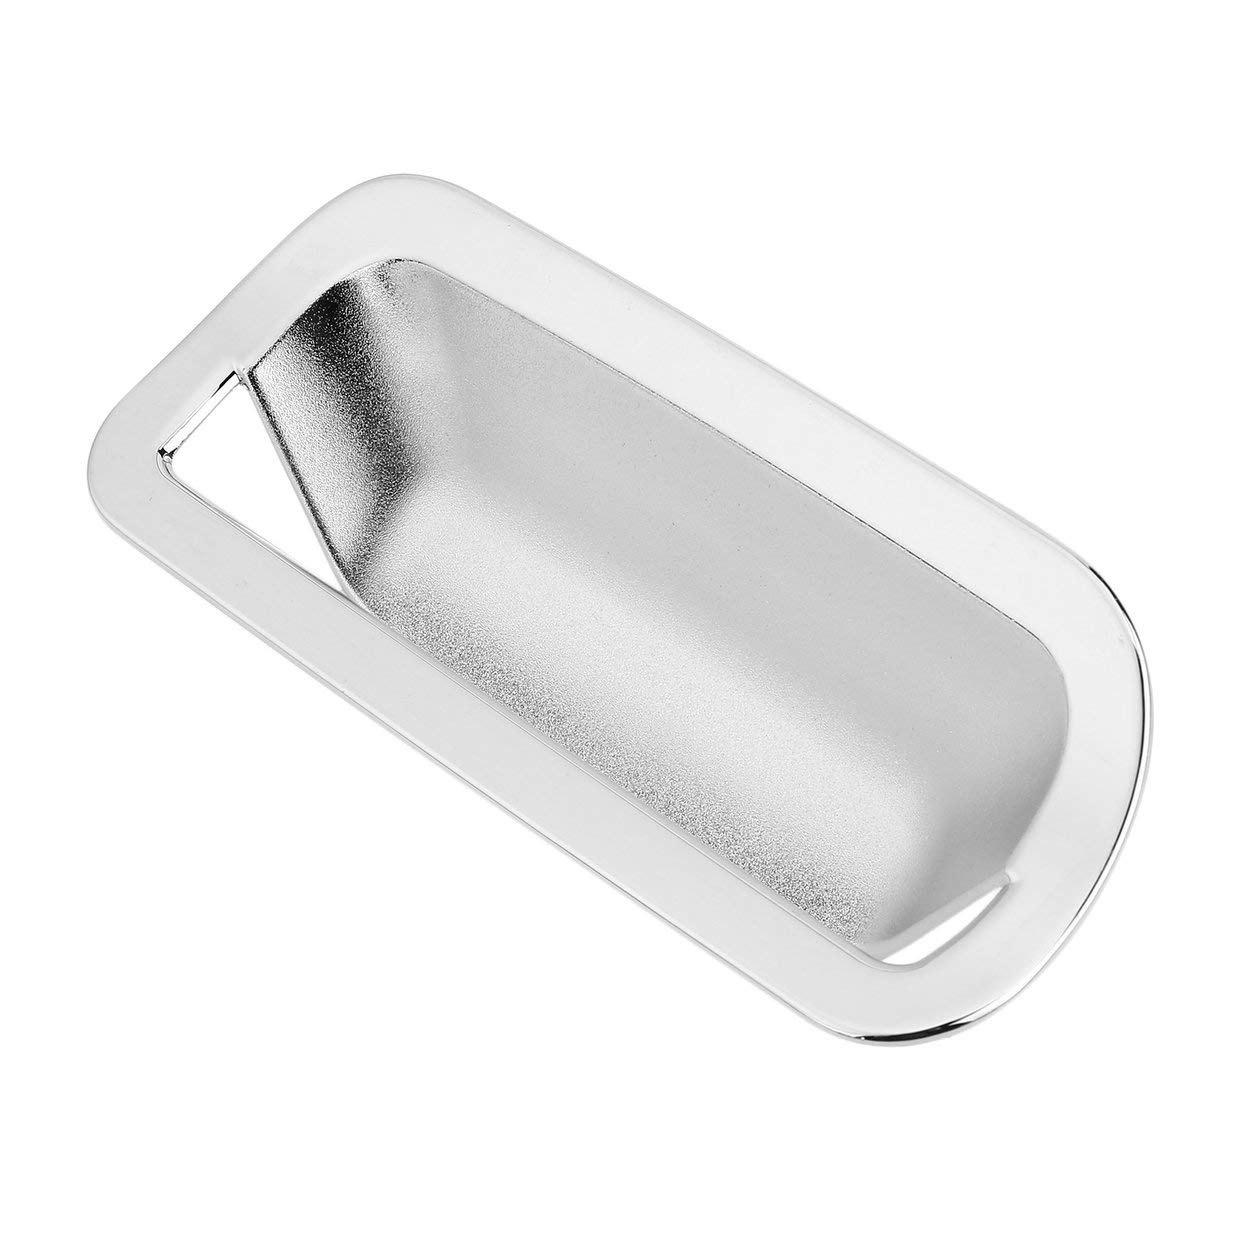 Tree-on-LifeLuxurious Car Chrome Door Handle Cover For Honda For CR-V 2007-2011 Door Handle Insert Cover Automobile Accessories